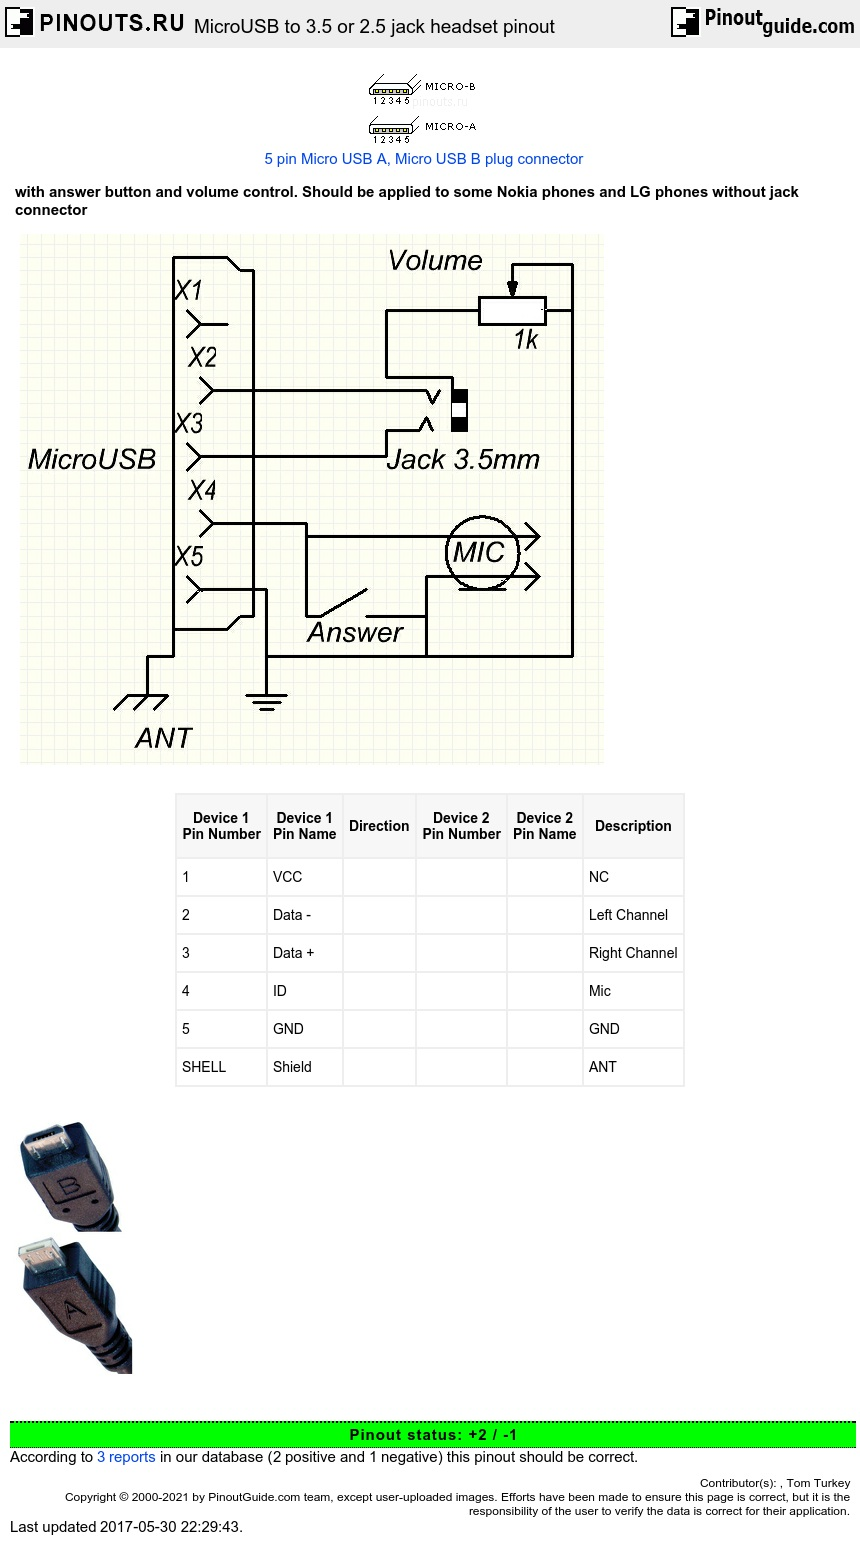 captivating microphone wiring diagram contemporary wiring  microusb_headset?resize\\\=665%2C620 captivating microphone wiring diagram  contemporary wiring